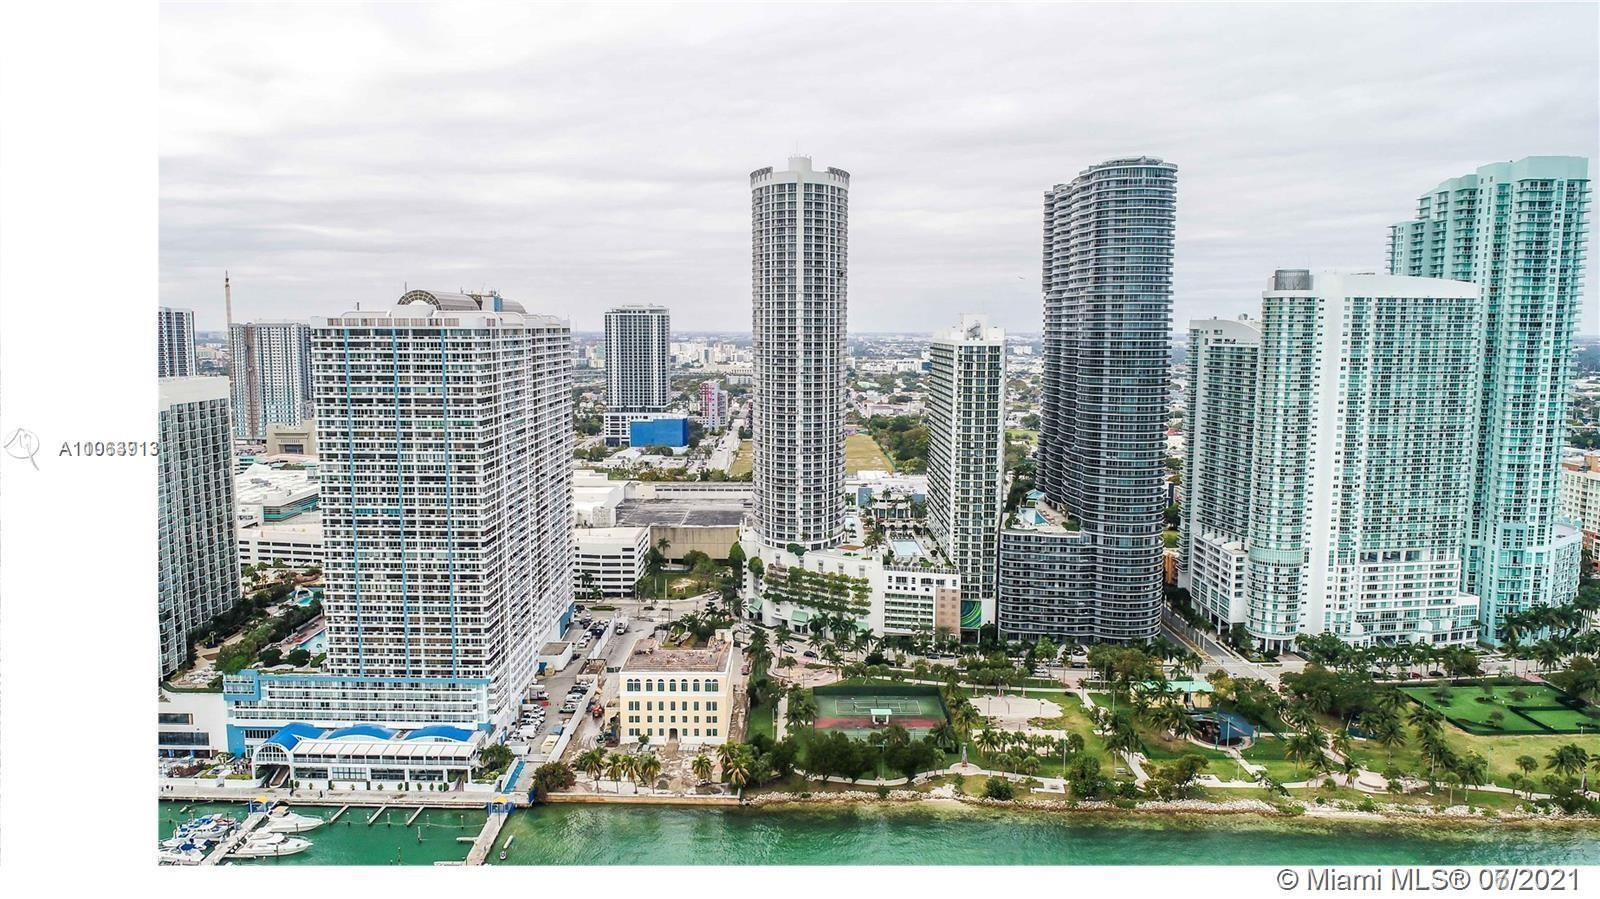 2 Bed/2 Bath unit with marble flooring, located on the 31st floor at the Iconic Opera Tower. This a